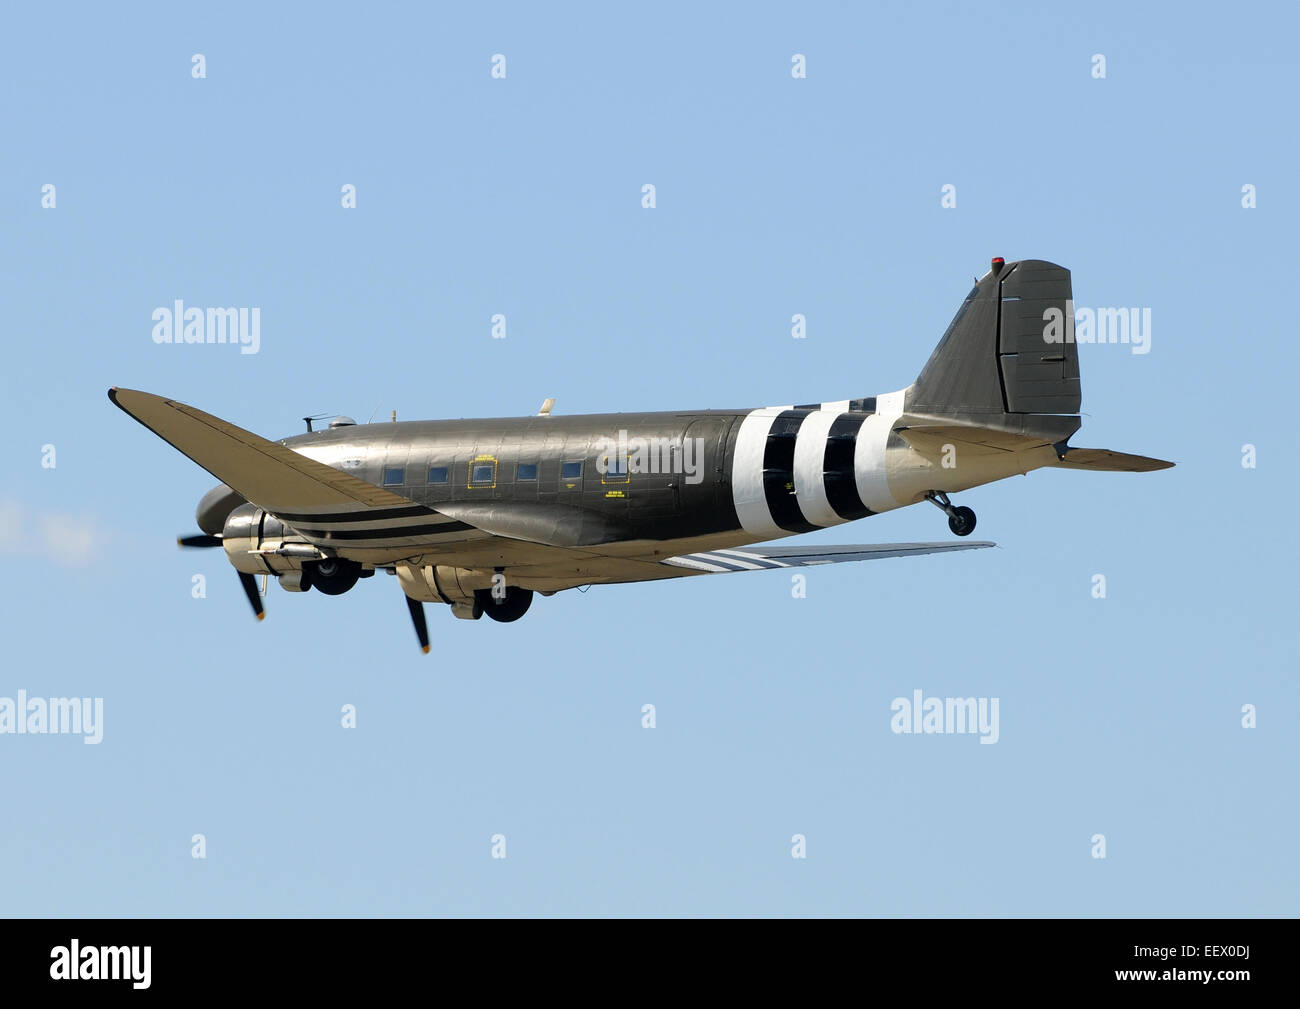 Retro propeller airplane in leveled flight DC-3 - Stock Image